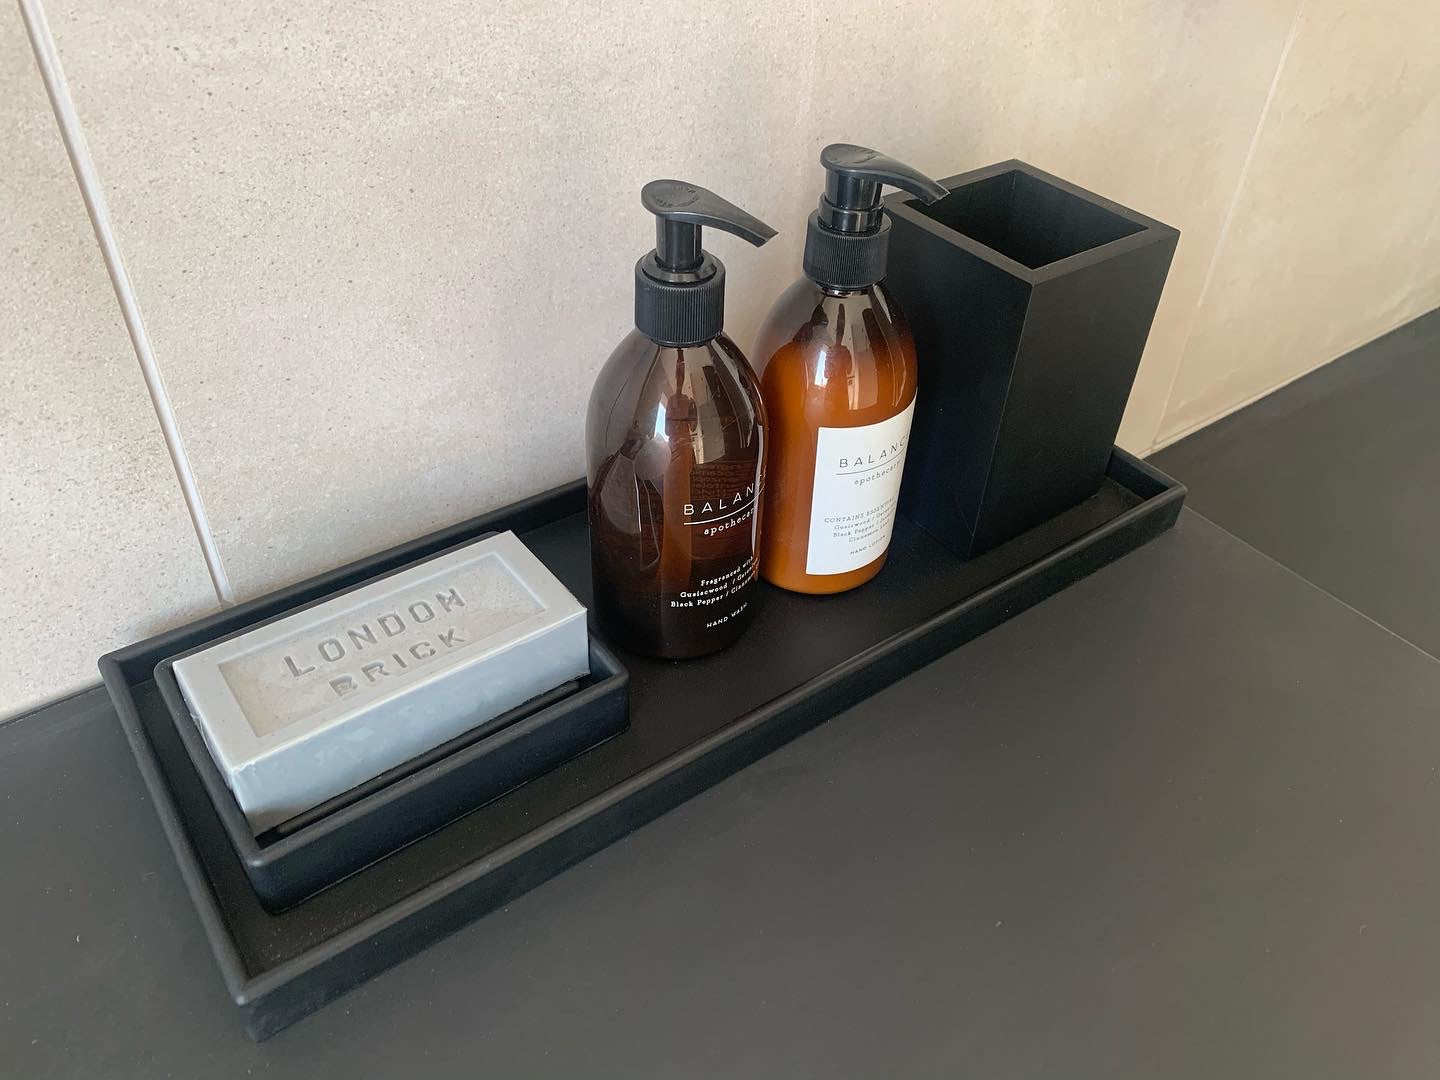 Styled bathroom tray - black rubber with London brick soap